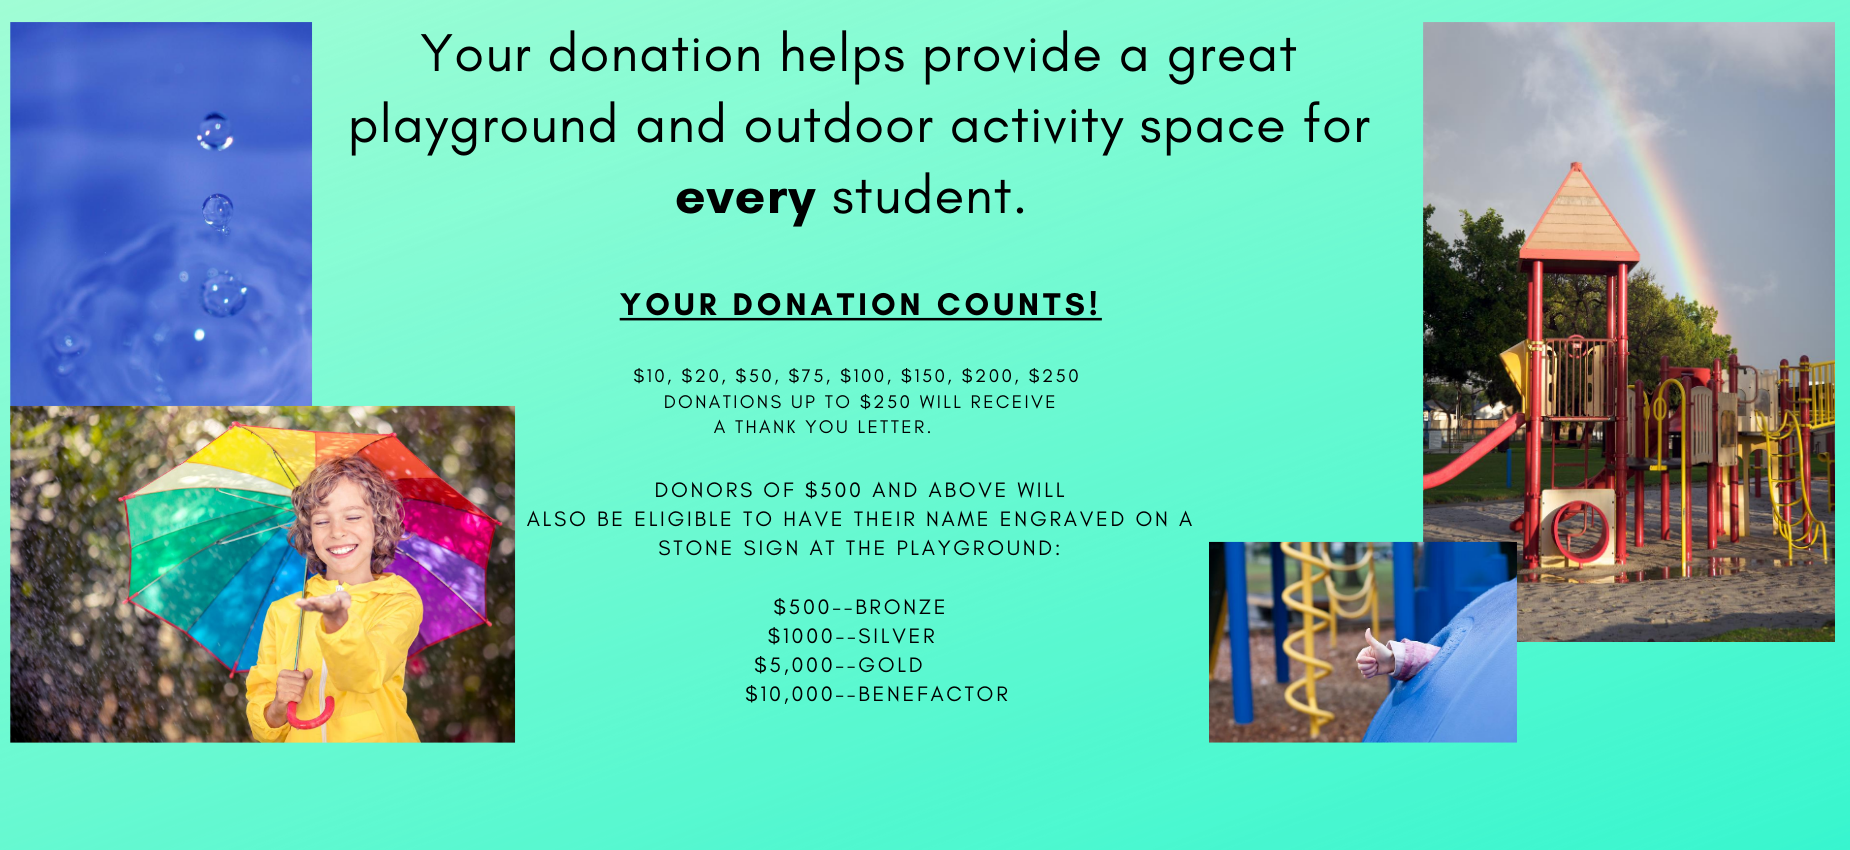 Playground donation breakdown